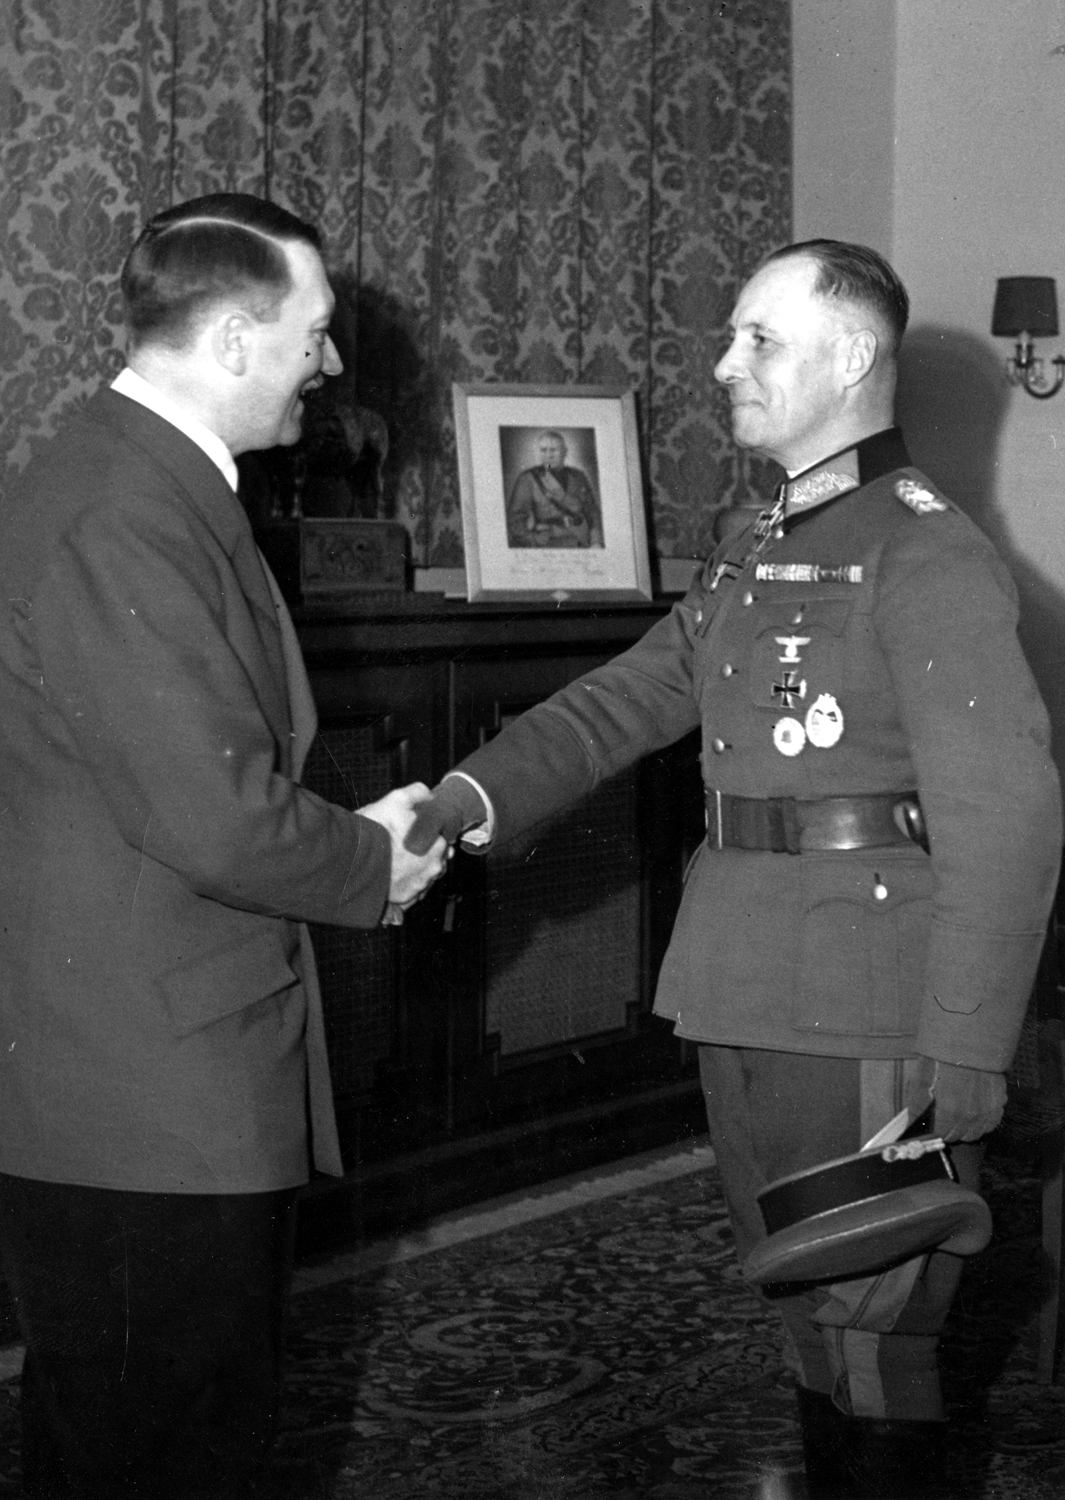 Adolf Hitler awards Erwin Rommel with the Knight's Cross of the Iron Cross